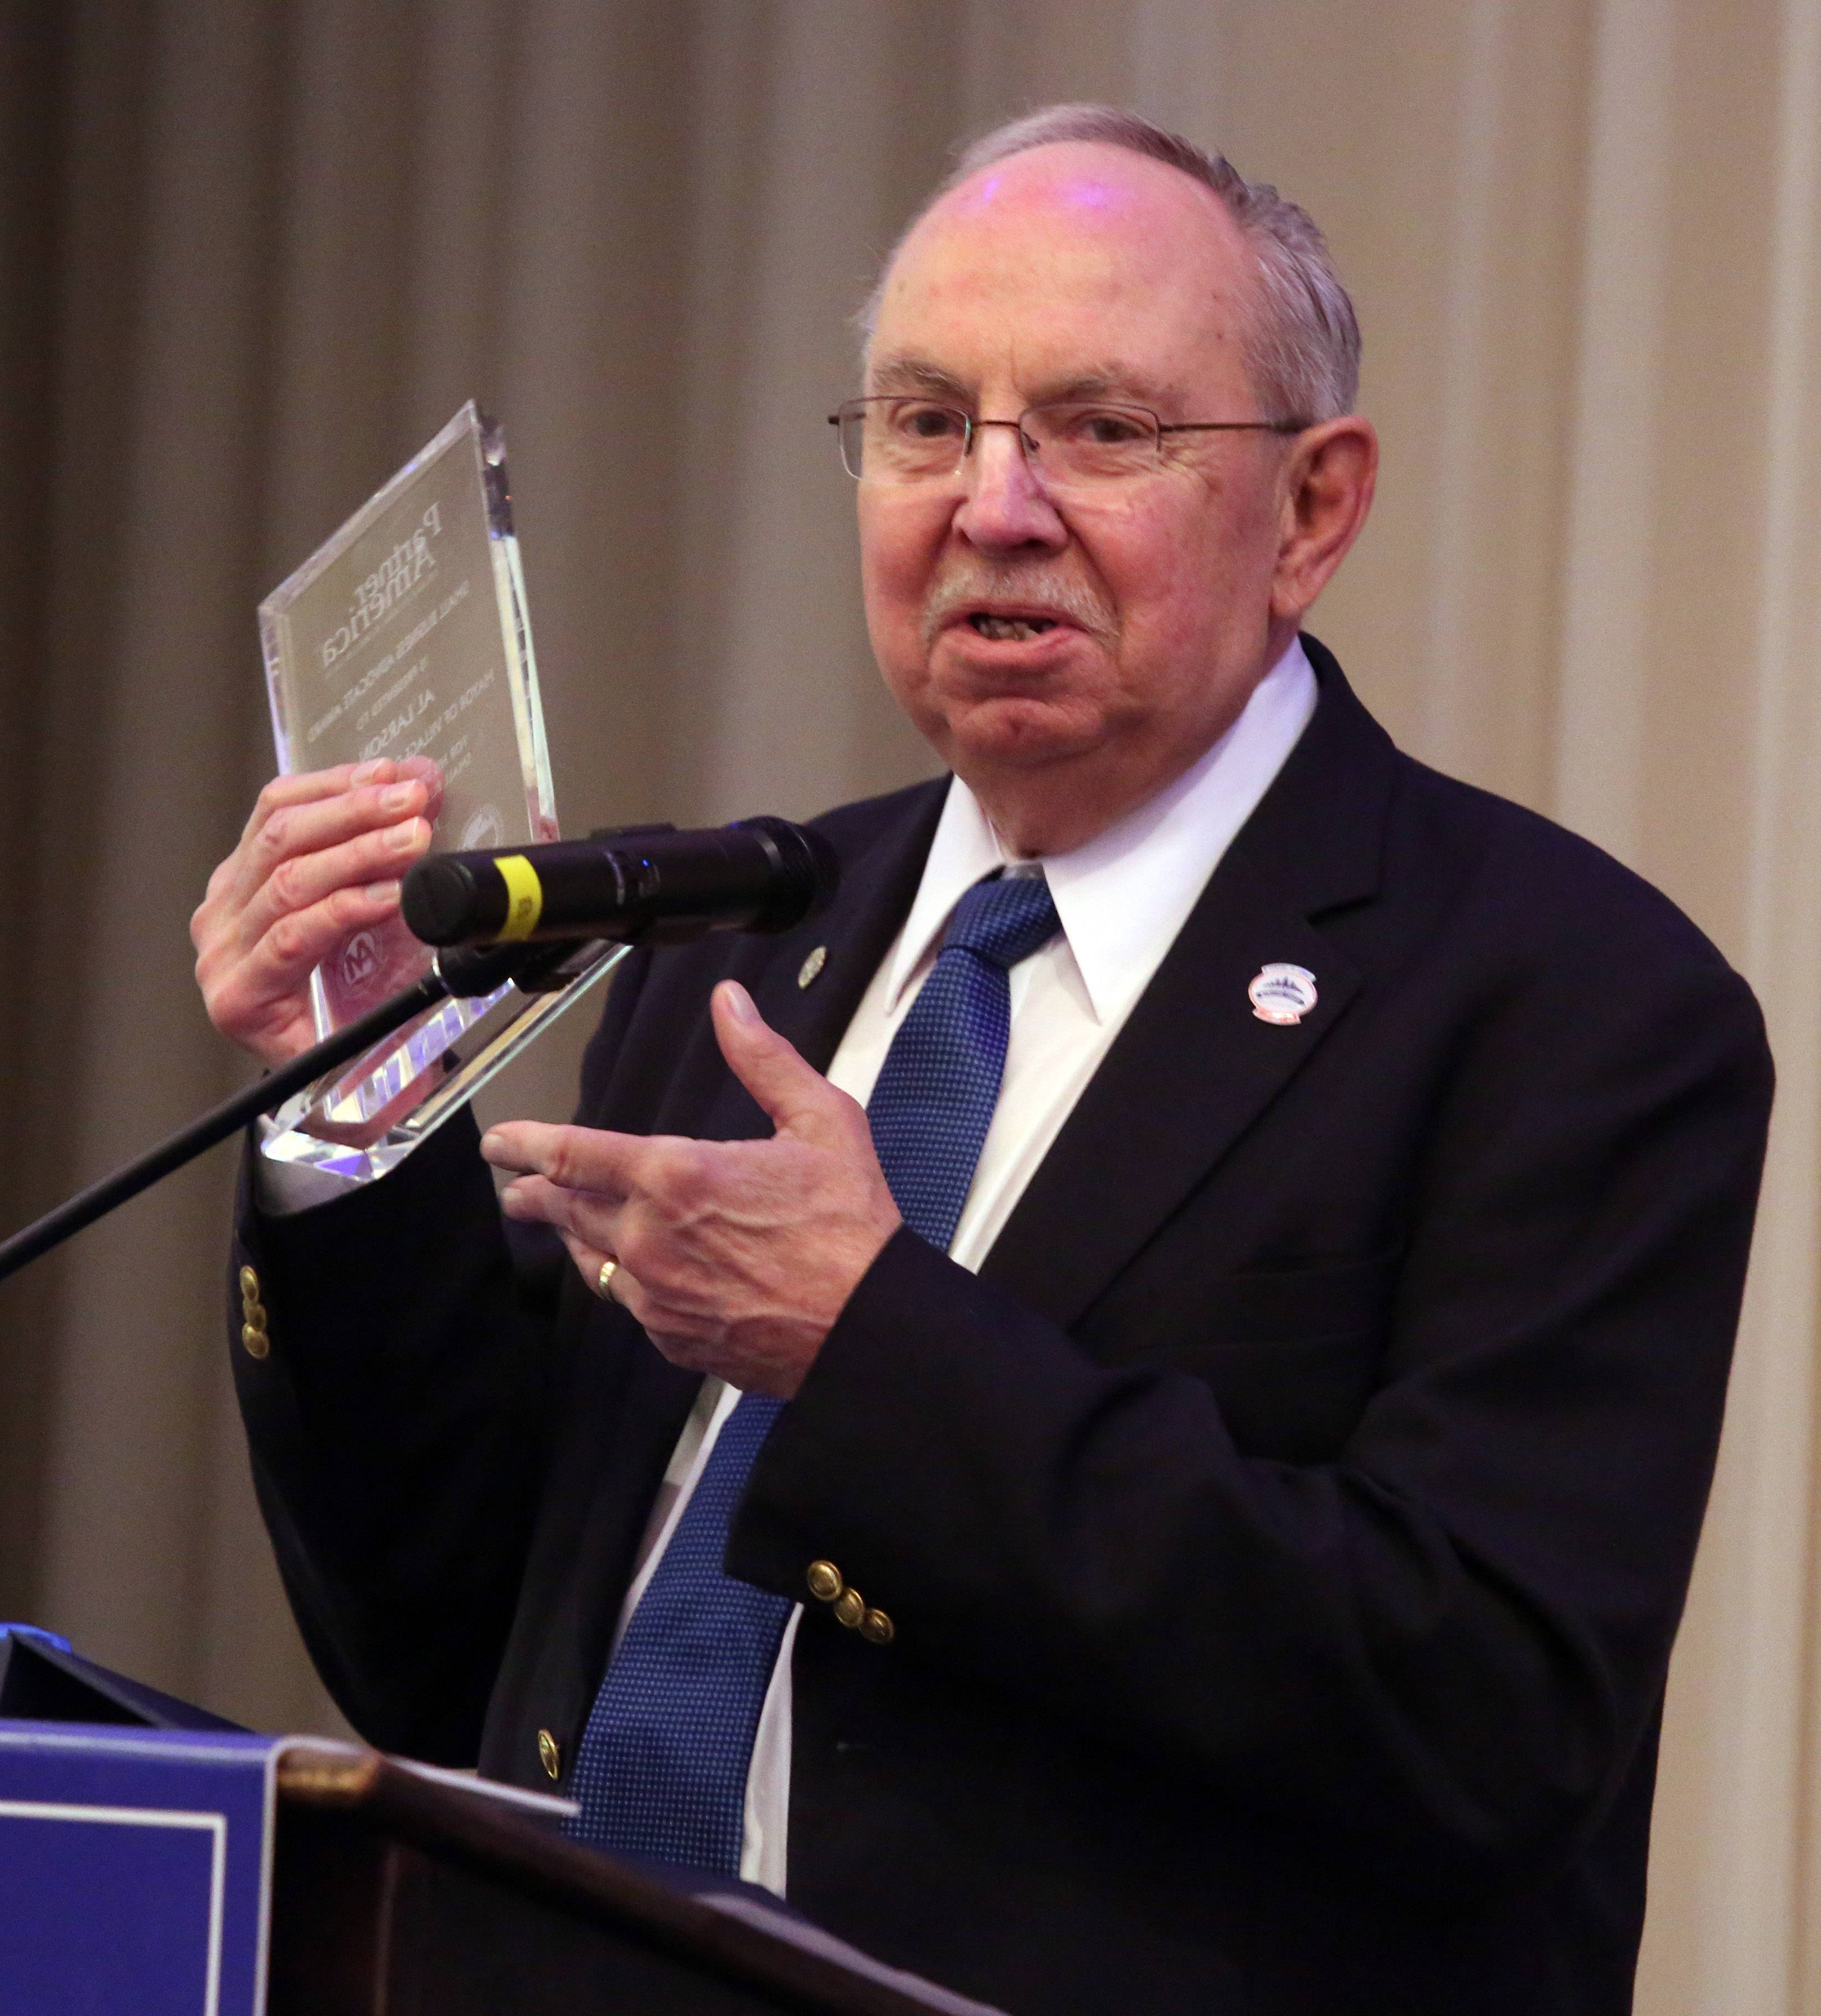 Schaumburg Mayor Al Larson holds up the U.S. Conference of Mayors Partner America Small Business Advocate Award he received Tuesday at the Schaumburg Business Association's monthly breakfast meeting. The award honors Larson's efforts to help small businesses grow in Schaumburg.